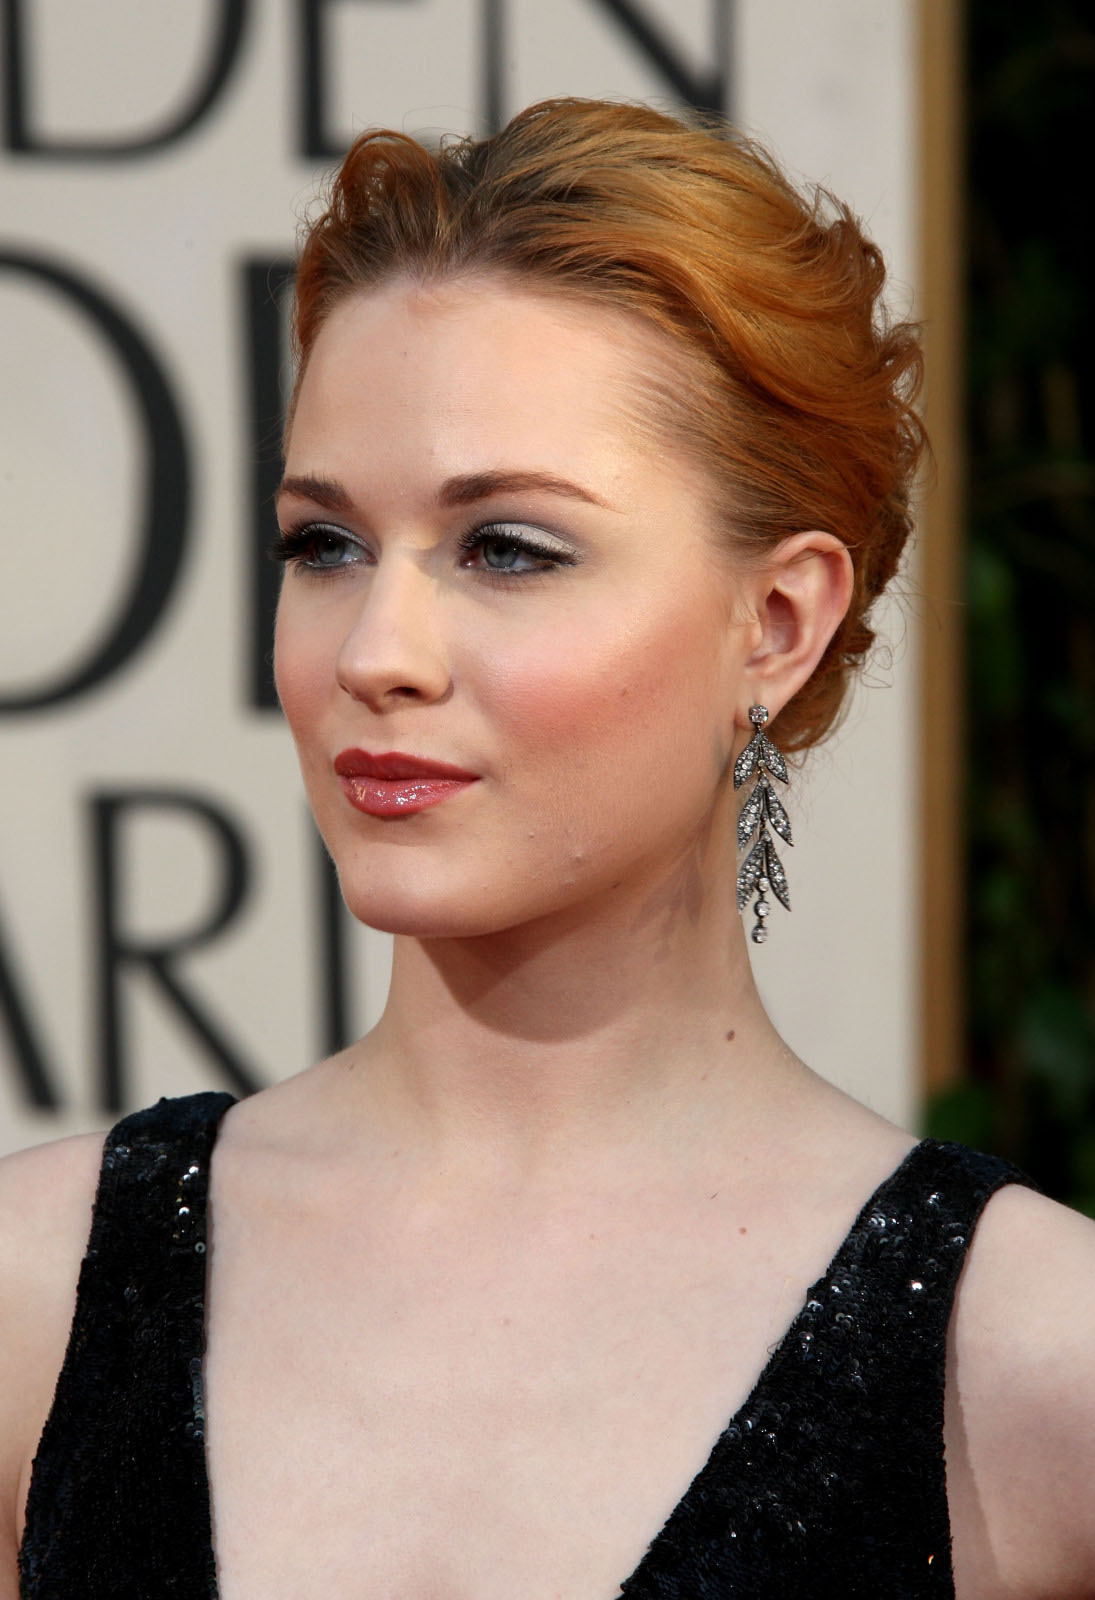 http://2.bp.blogspot.com/_eaAfMKx7Mbs/S7KiUFNJrdI/AAAAAAAABUc/AXNgeHLUBUs/s1600/evan-rachel-wood-earrings.jpg